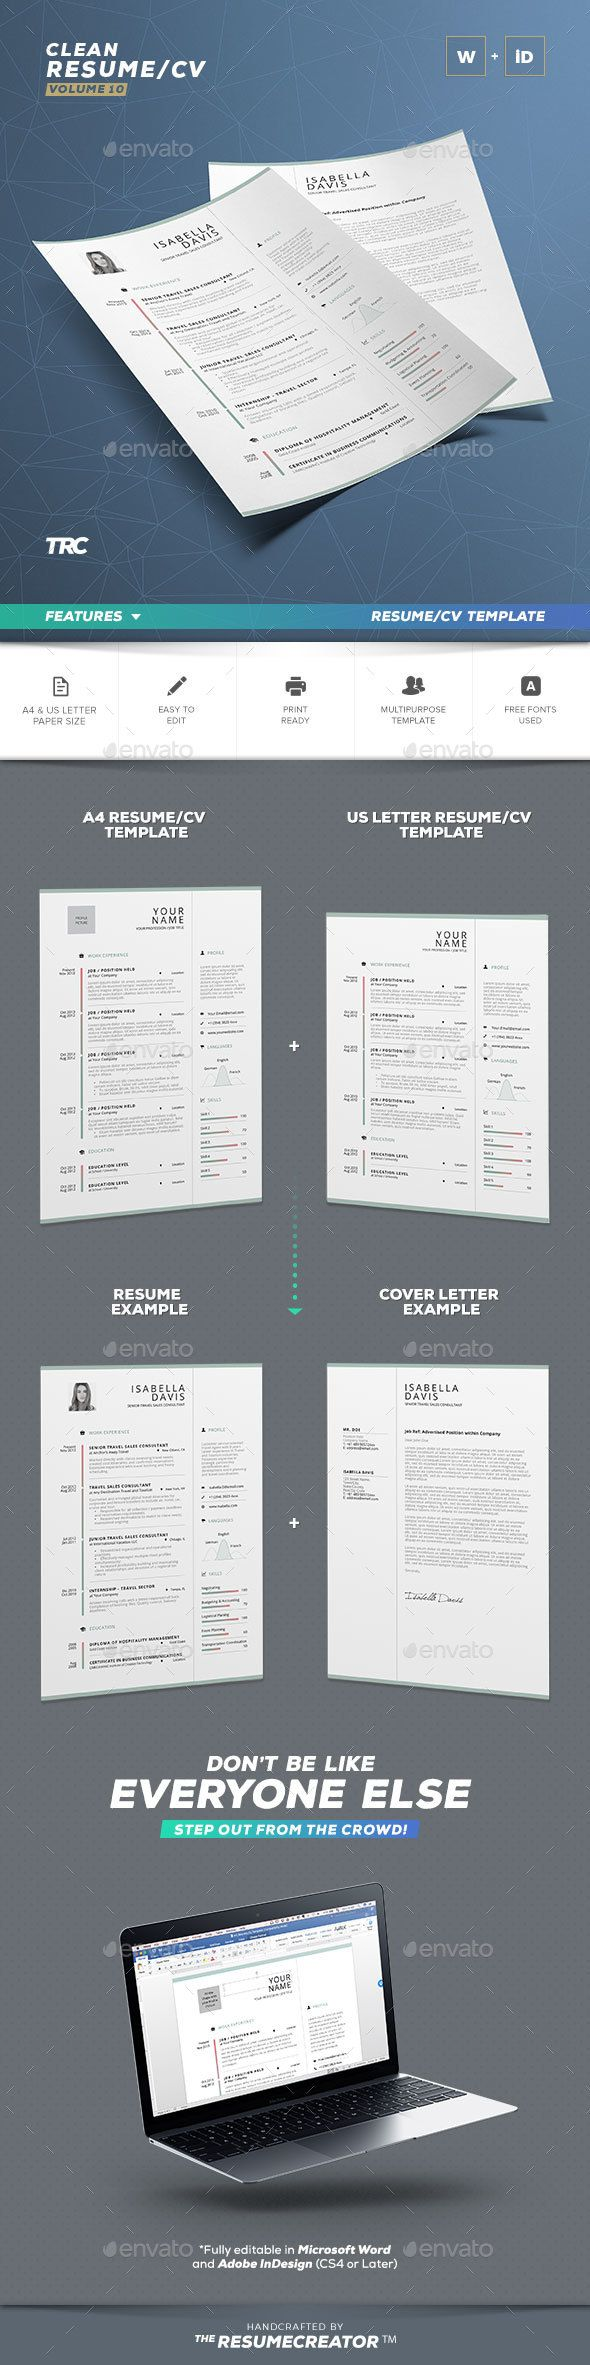 Filmmaker Resume Top  Best Simple Resume Examples Ideas On Pinterest  Simple Cv  Management Resumes Word with Restaurant Manager Resumes Word Clean Resumecv Volume  Basic Resumes Pdf